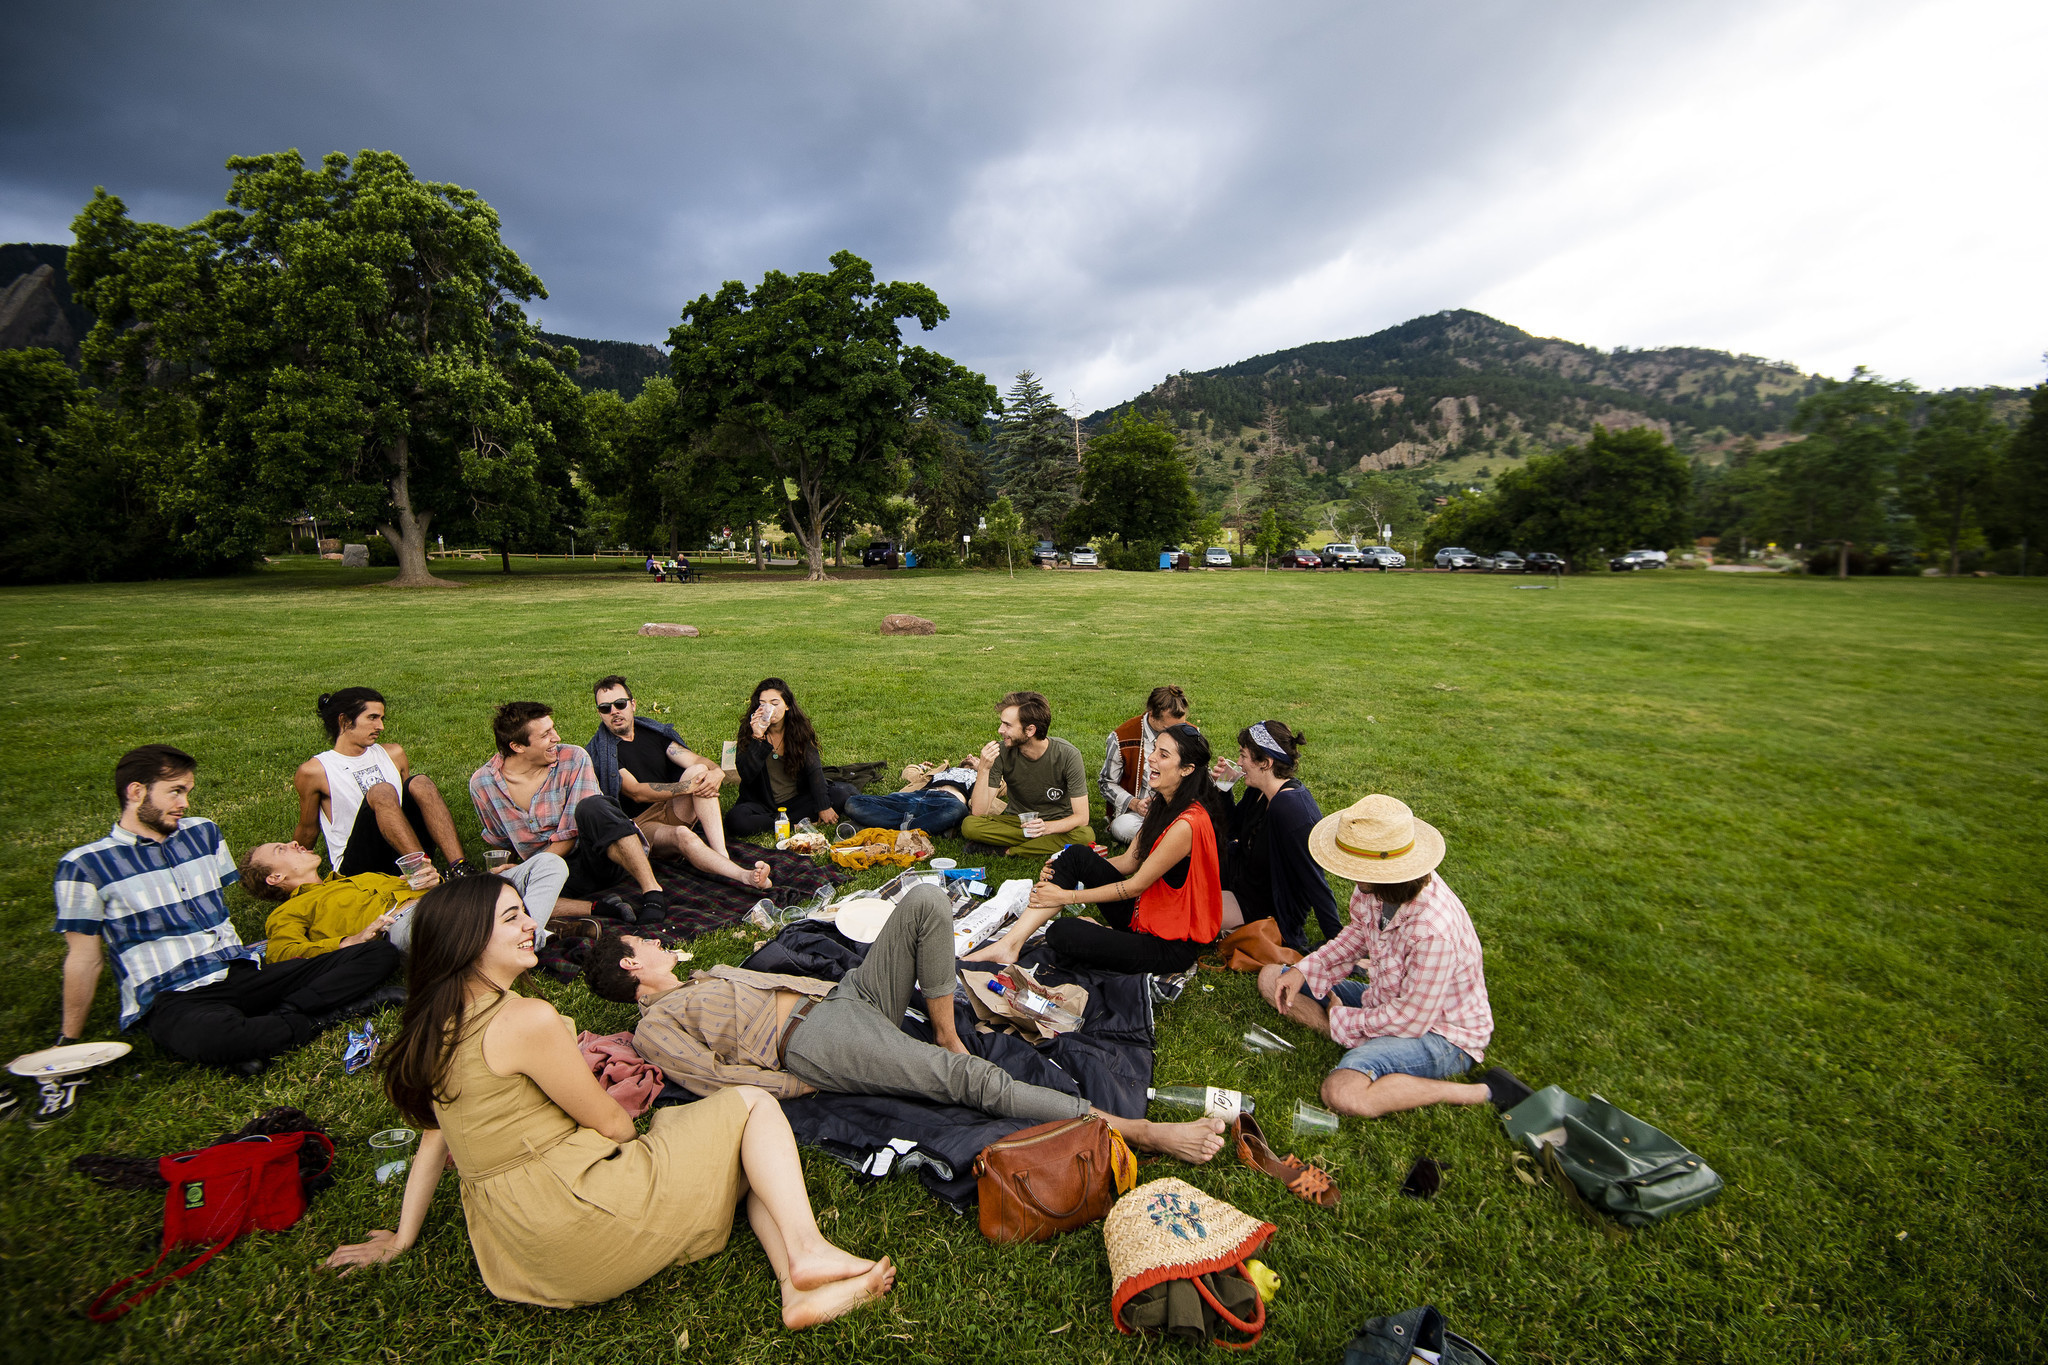 Boulder Colorado dating scene